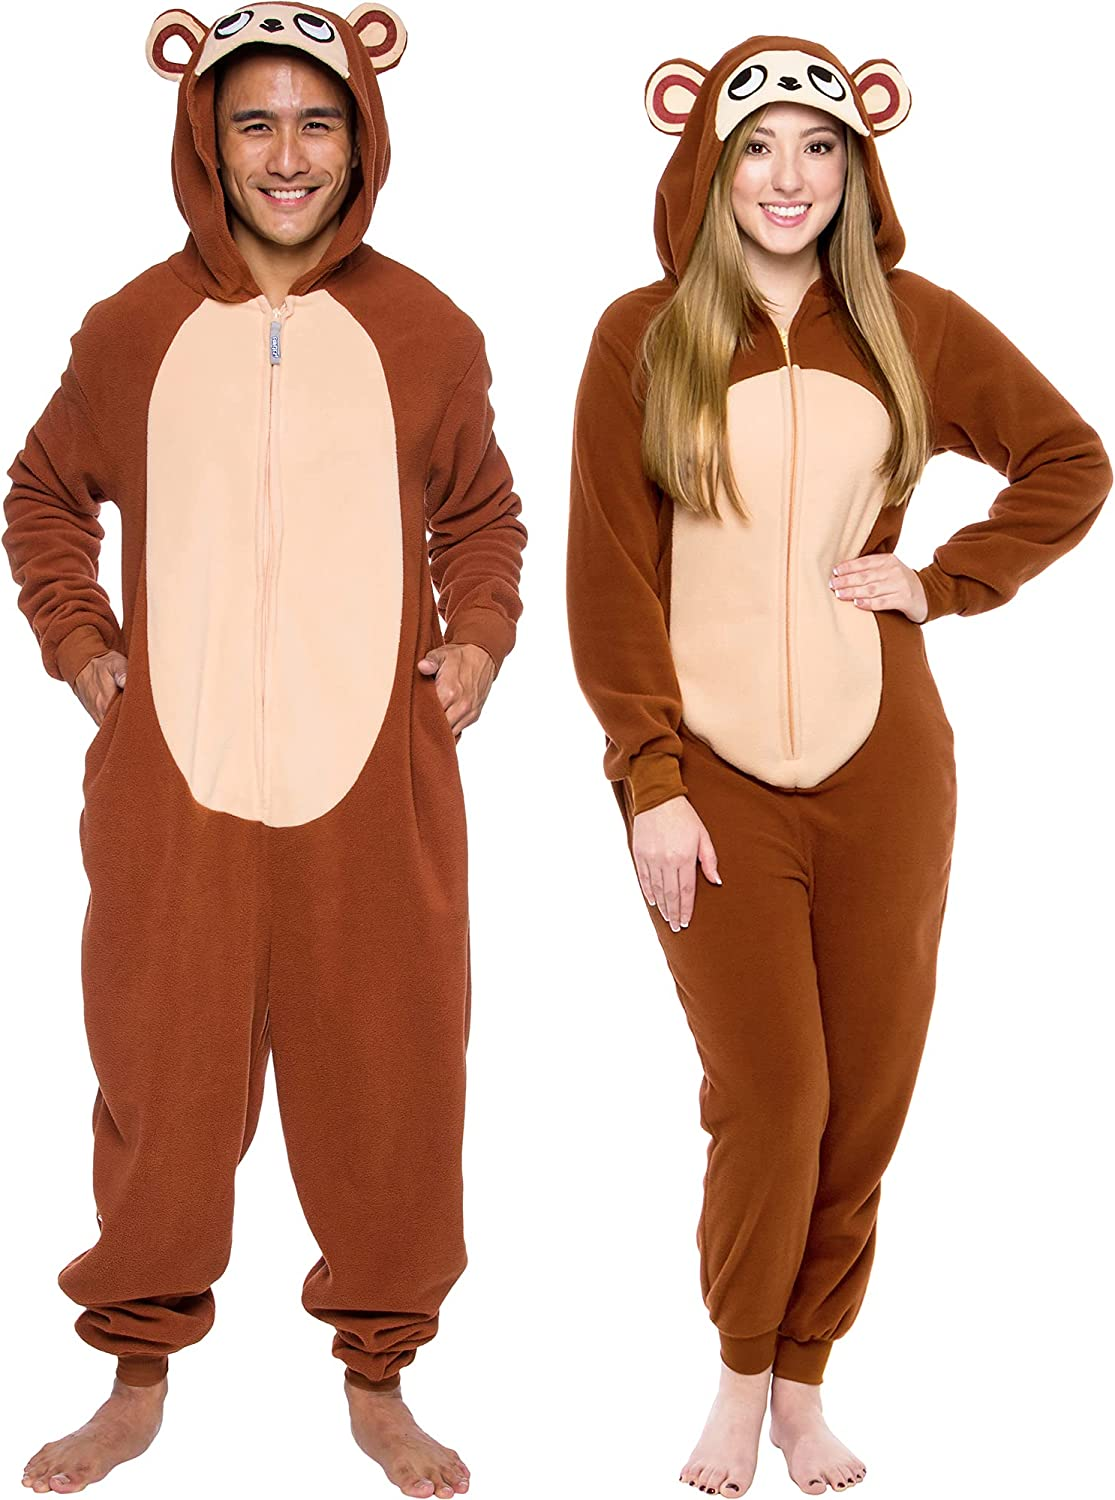 Silver Lilly Slim Fit Animal Pajamas - Adult One Piece Cosplay Monkey Costume